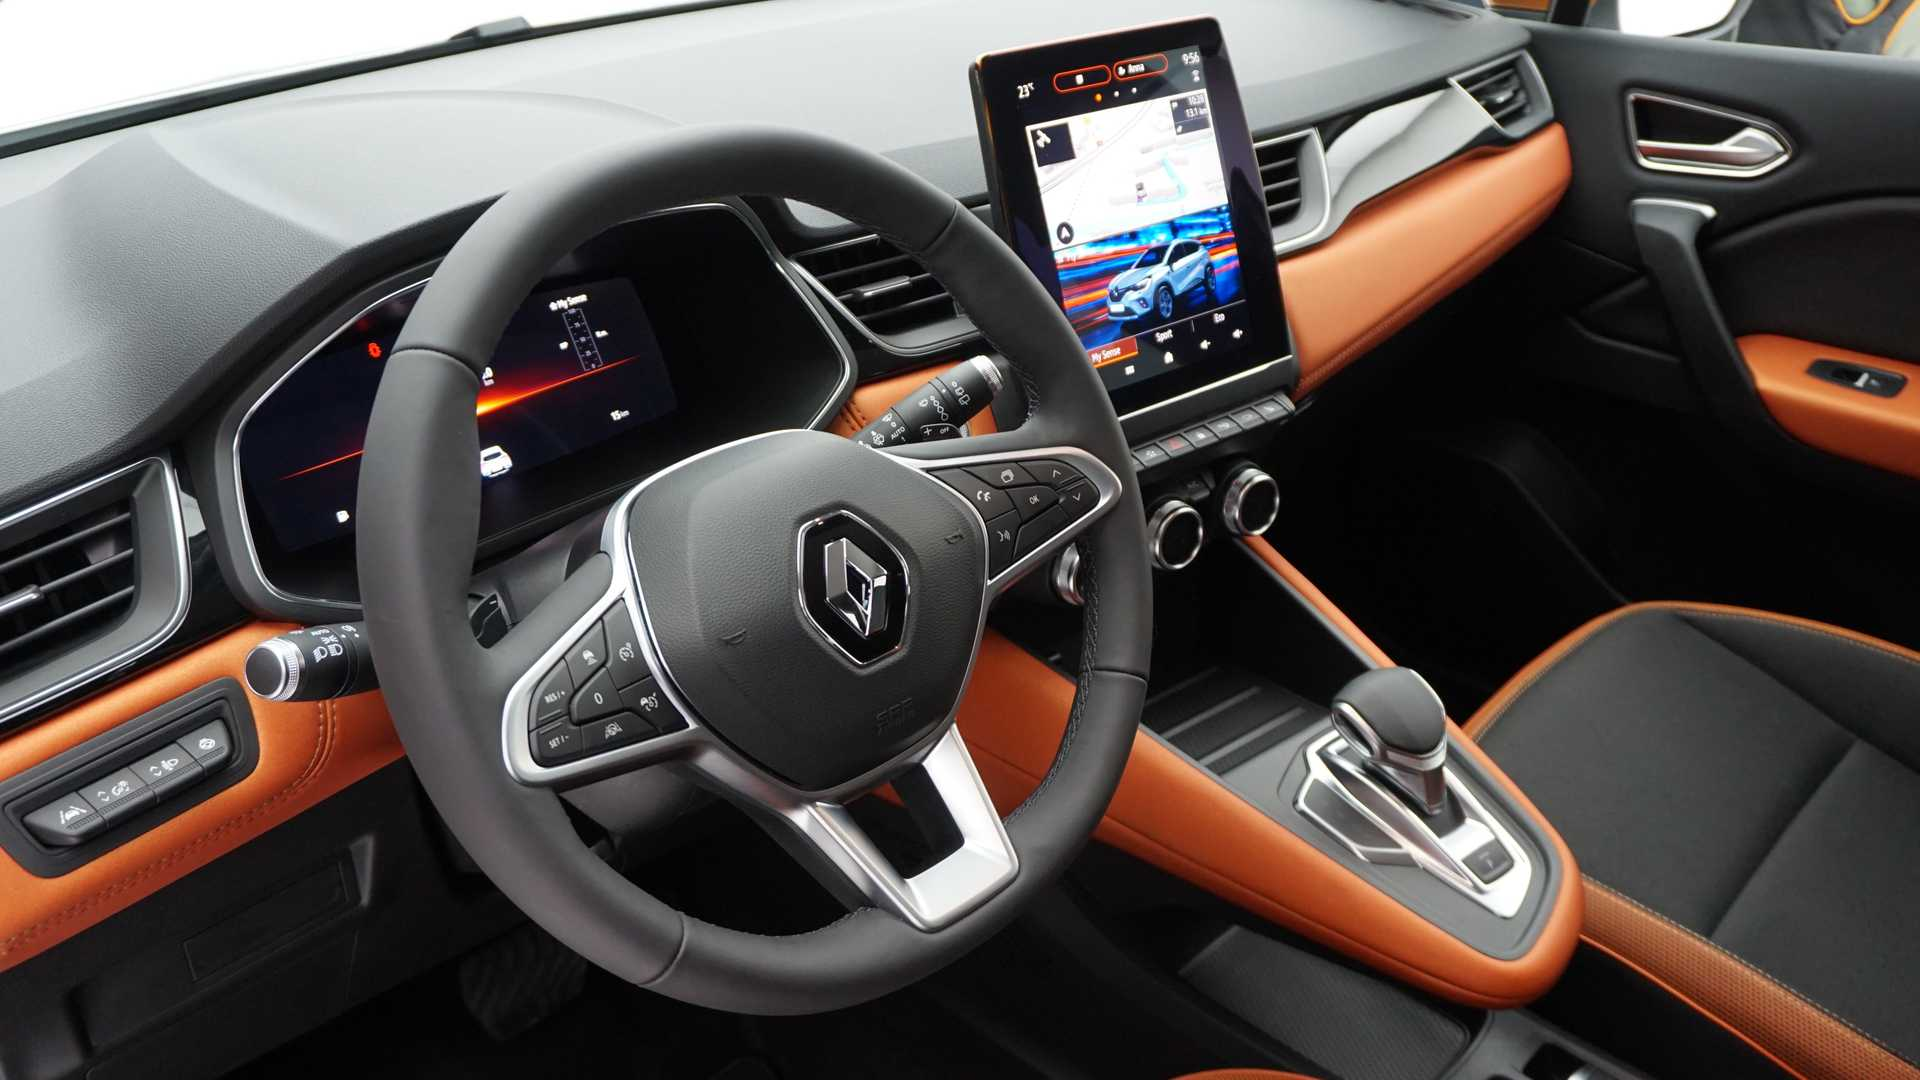 Renault Captur 2020: Interior, Price, Redesign, And Specs >> 2020 Renault Captur Breaks Cover With Familiar Look New Tech